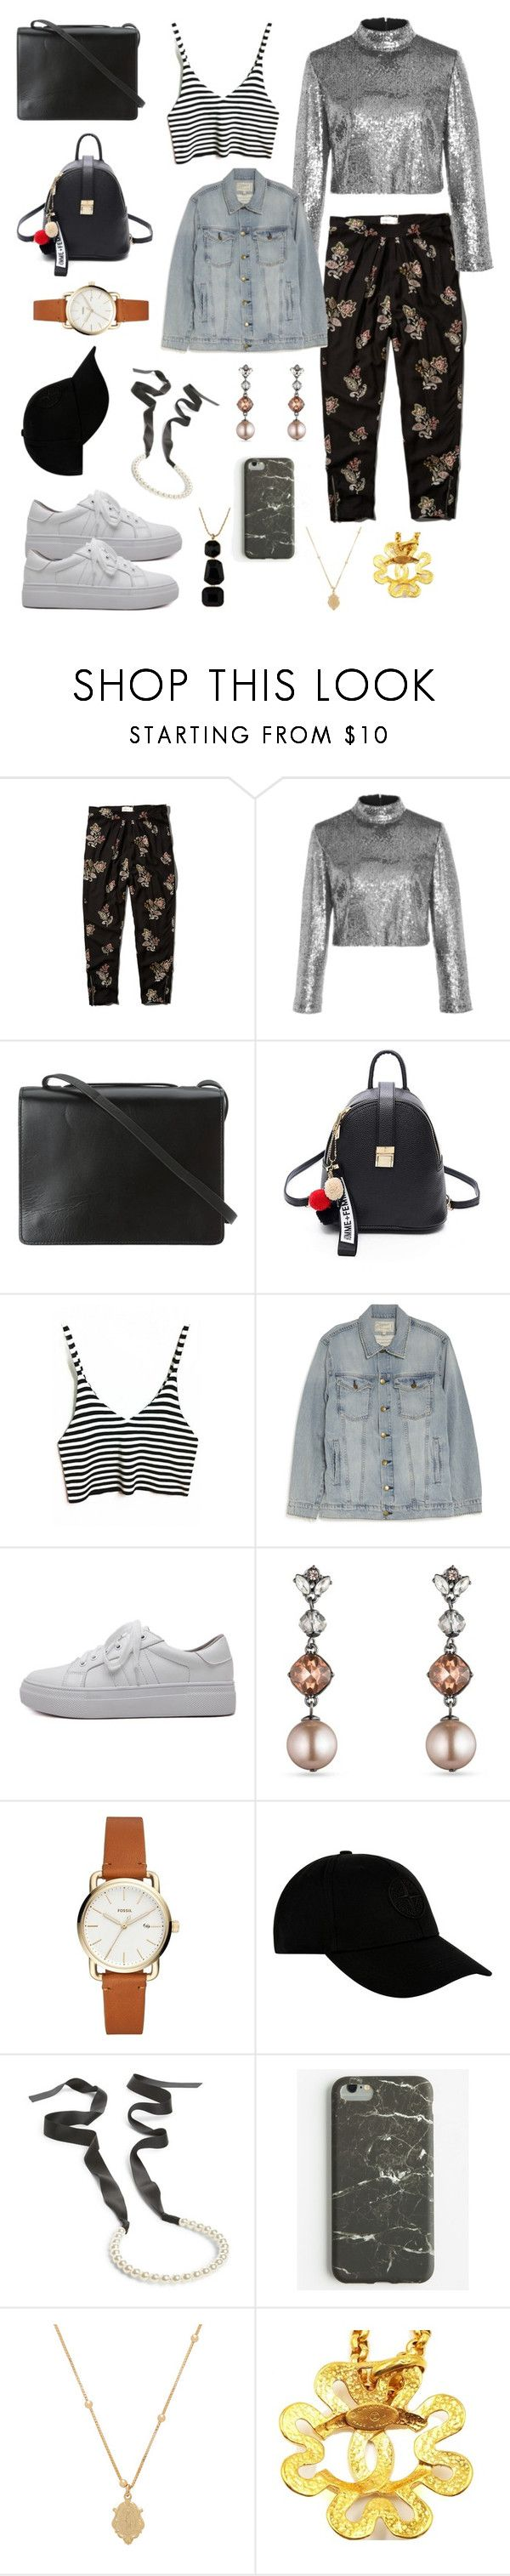 """""""Untitled #1190"""" by lexi-riney ❤ liked on Polyvore featuring Abercrombie & Fitch, A.L.C., BCBGMAXAZRIA, Current/Elliott, Carolee, STONE ISLAND, Cara, Ankit, Joolz by Martha Calvo and Chanel"""